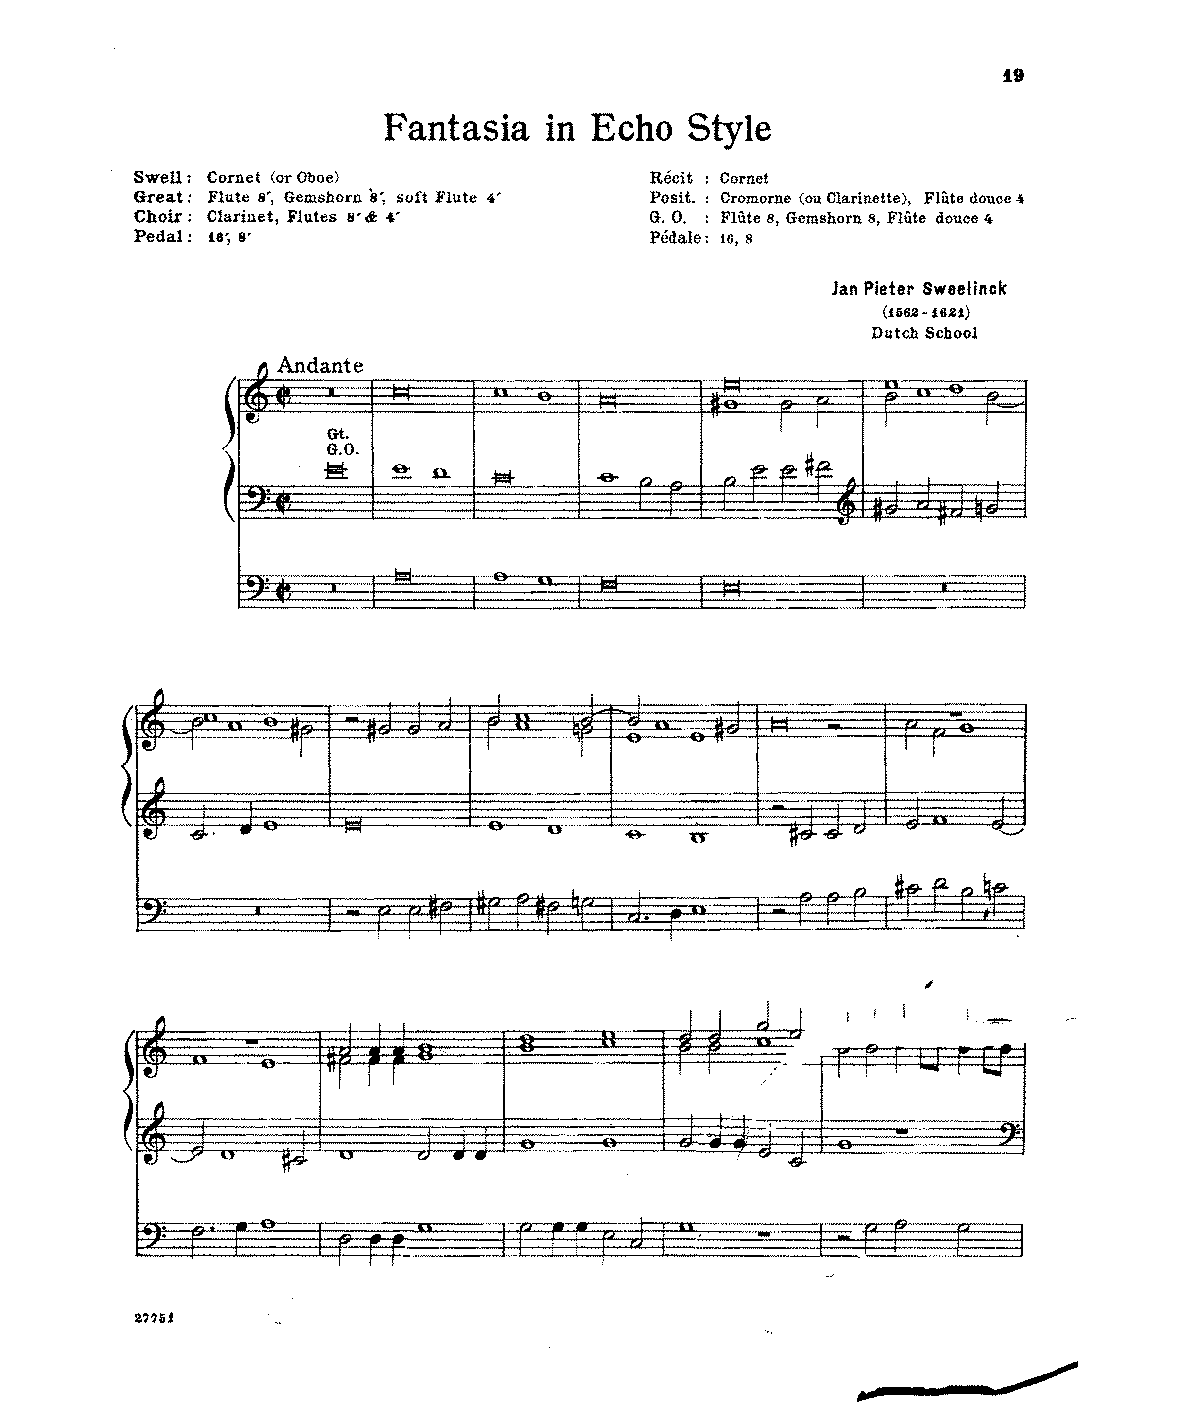 PMLP79718-Sweelinck - Fantasia in Echo Style.pdf